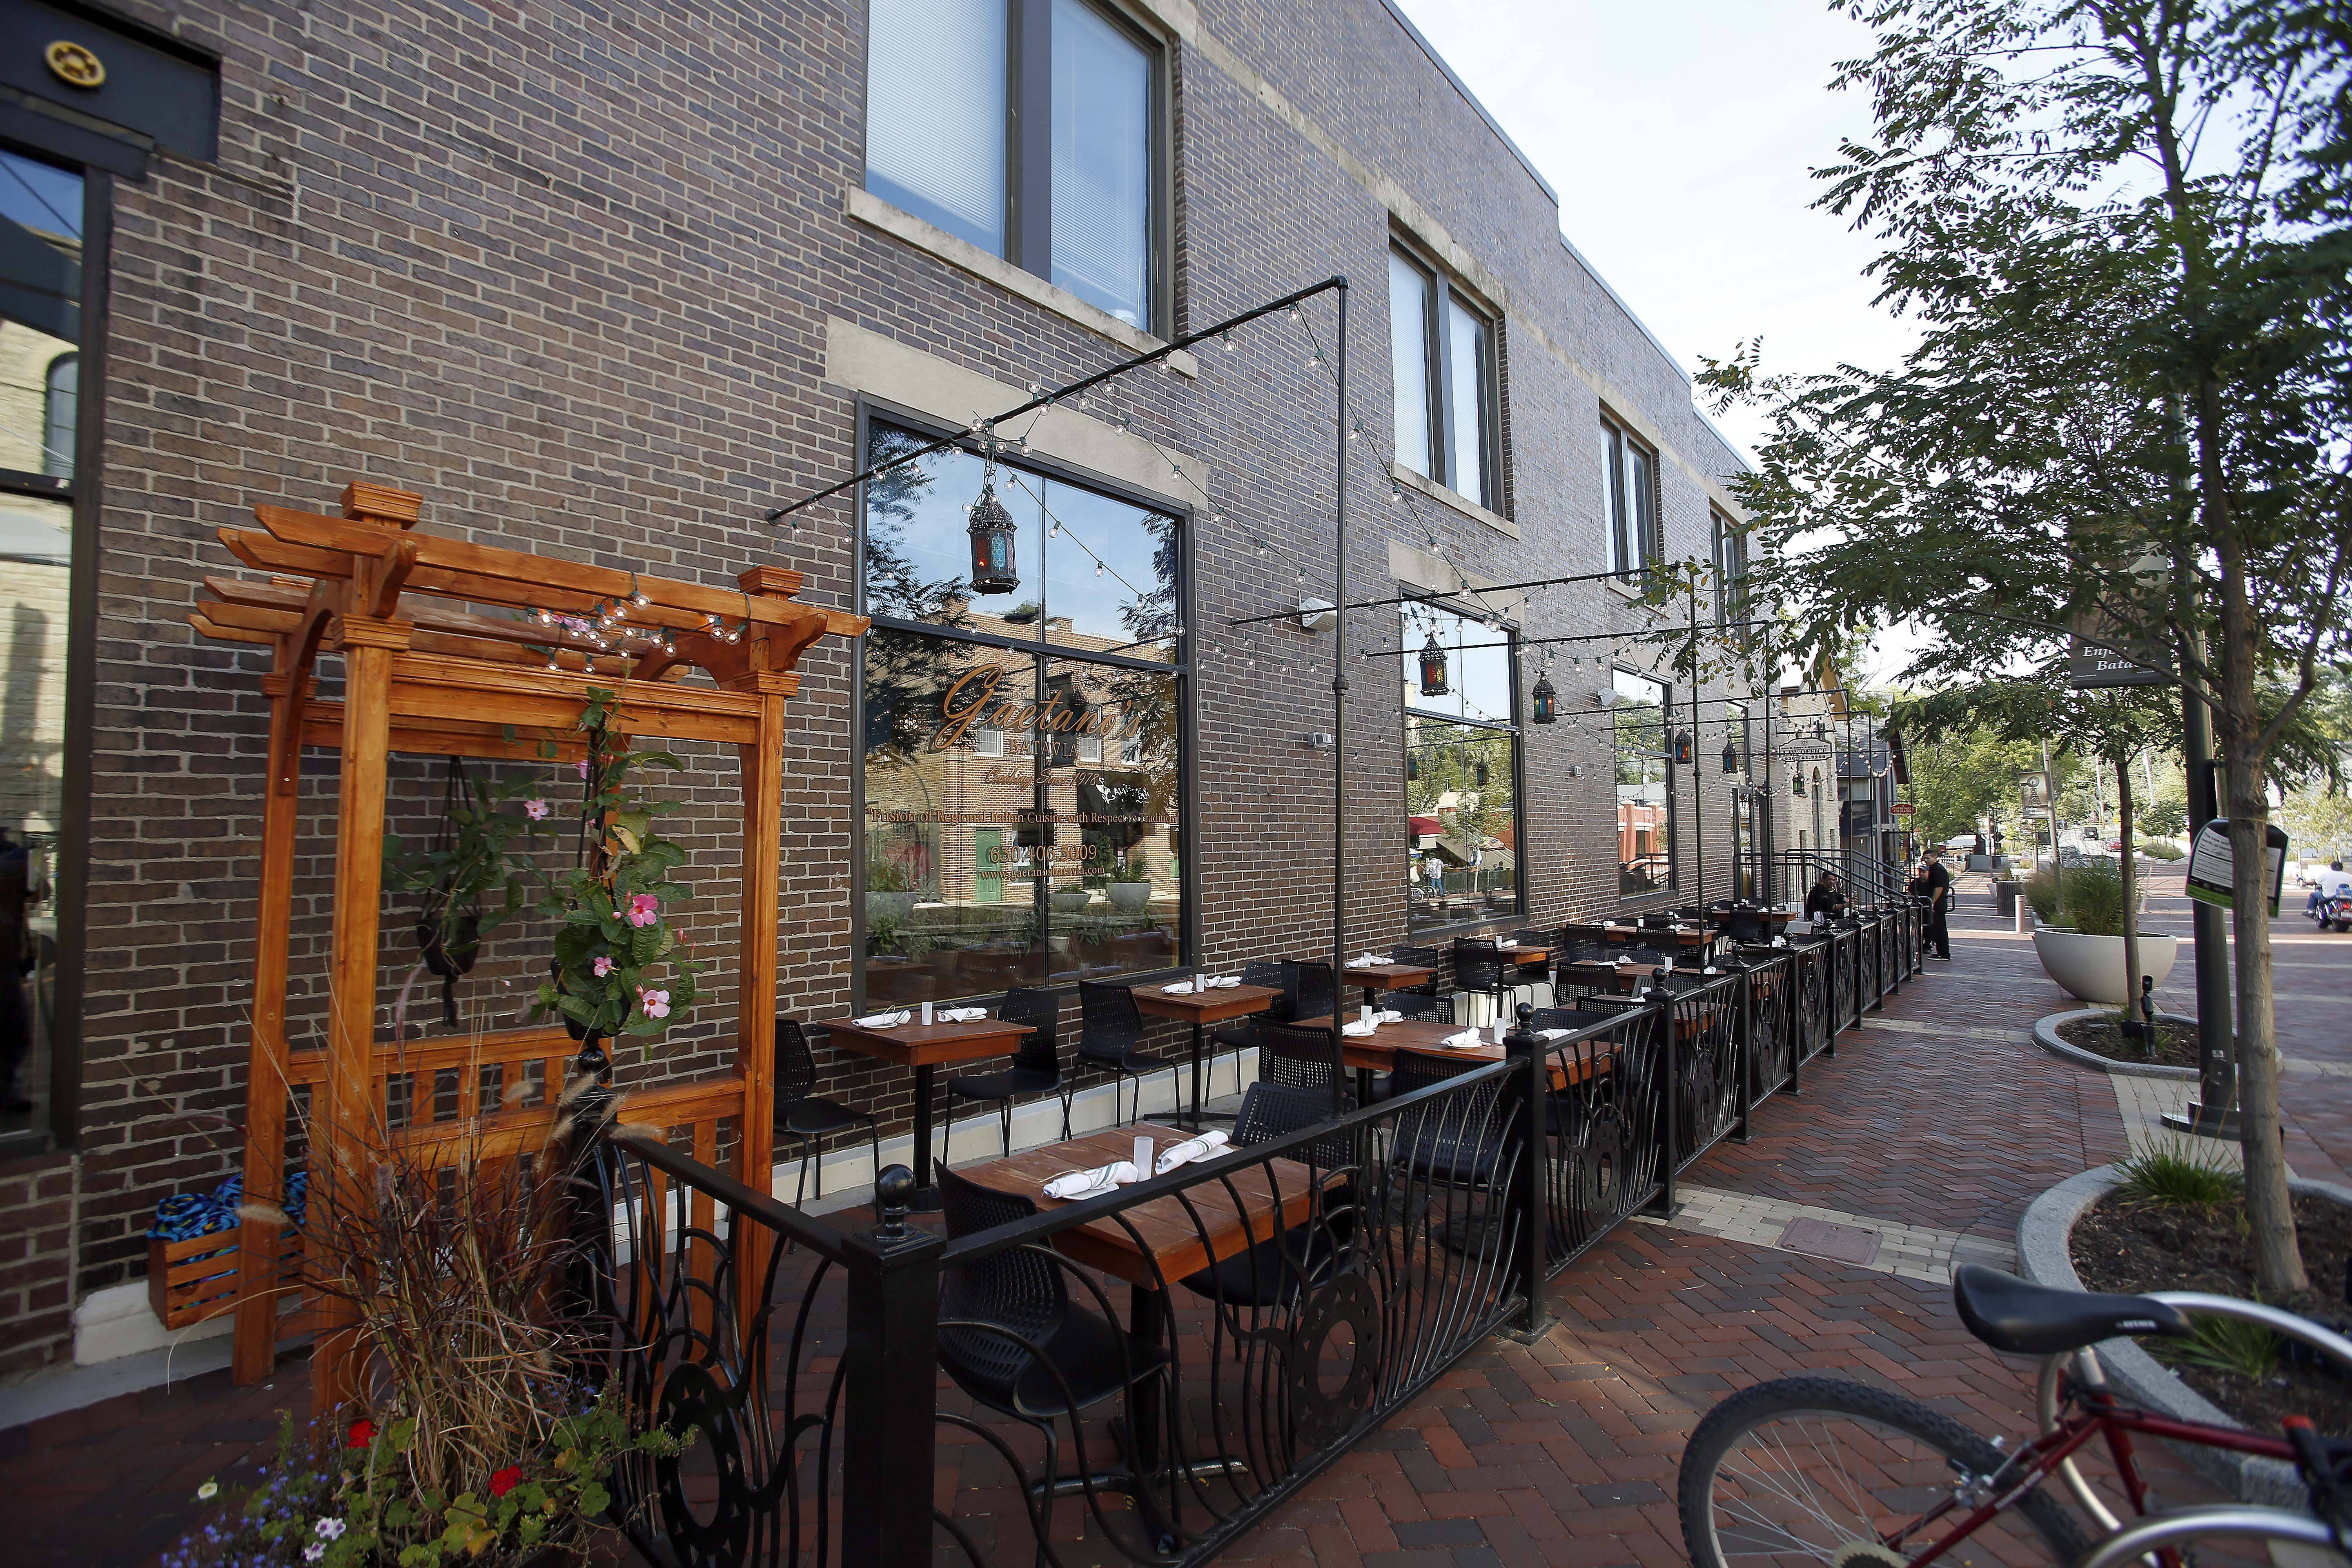 The outdoor patio at Gaetano's allows diners to enjoy the renovated streetscape in downtown Batavia.